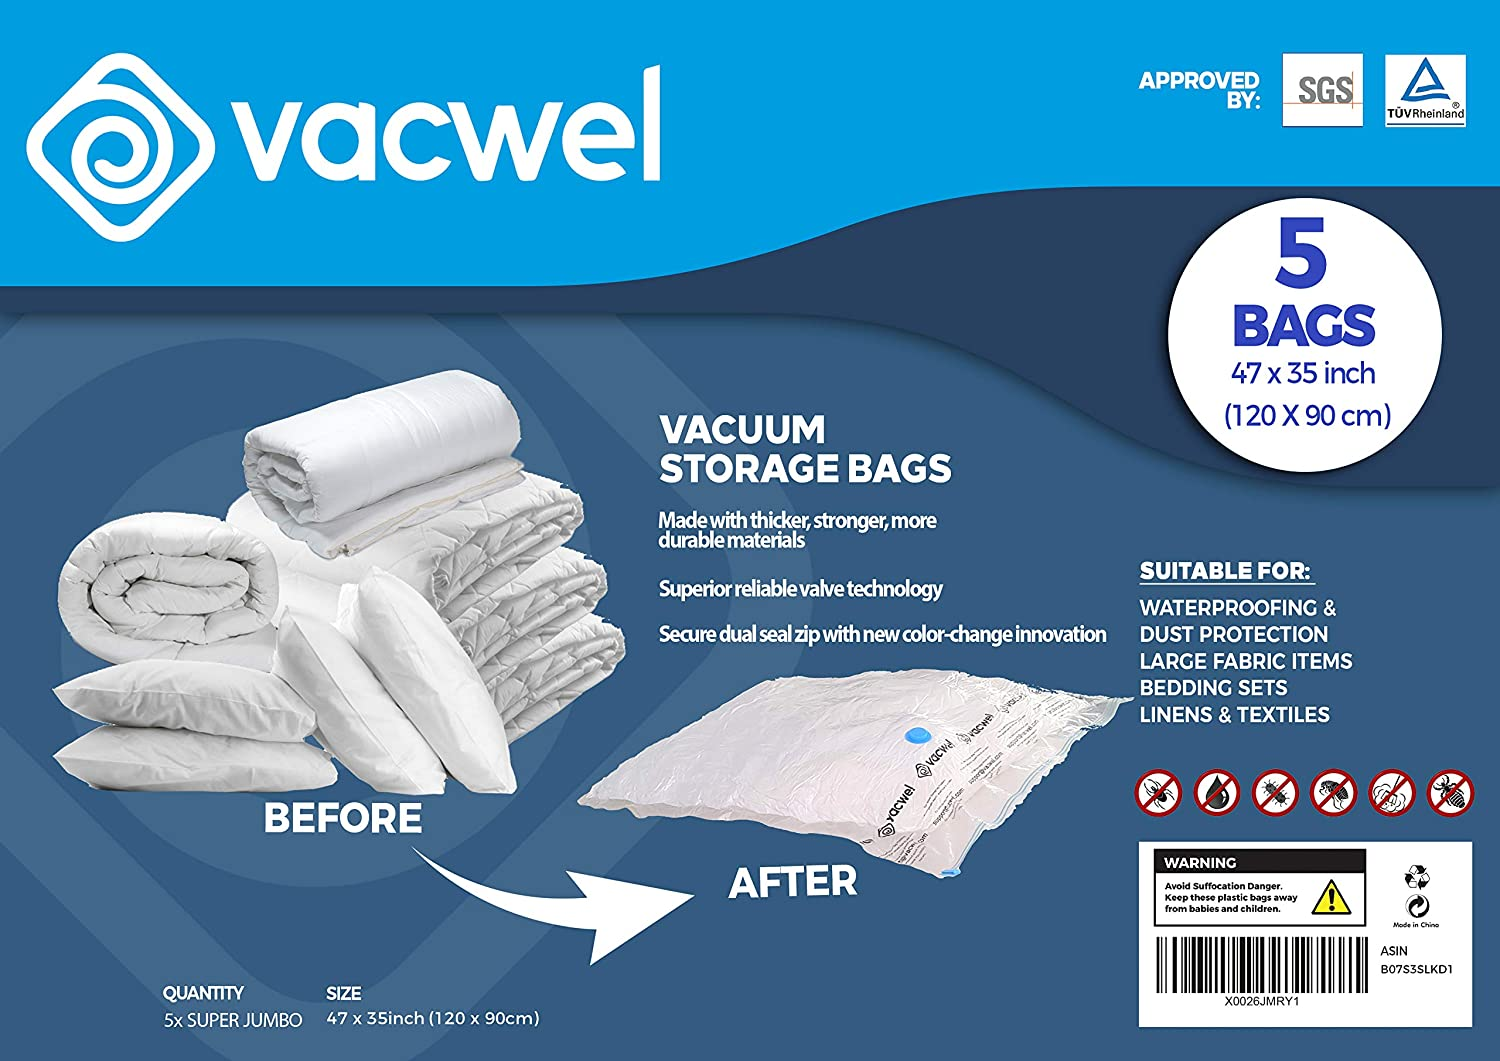 Jumbo XXL Vacuum Storage Bags, 47 x 35 Space Saver Bags for Clothes, King Comforters or a Small Mattress, Thick & Strong XXL Size (5 XXXL Bag Pack)